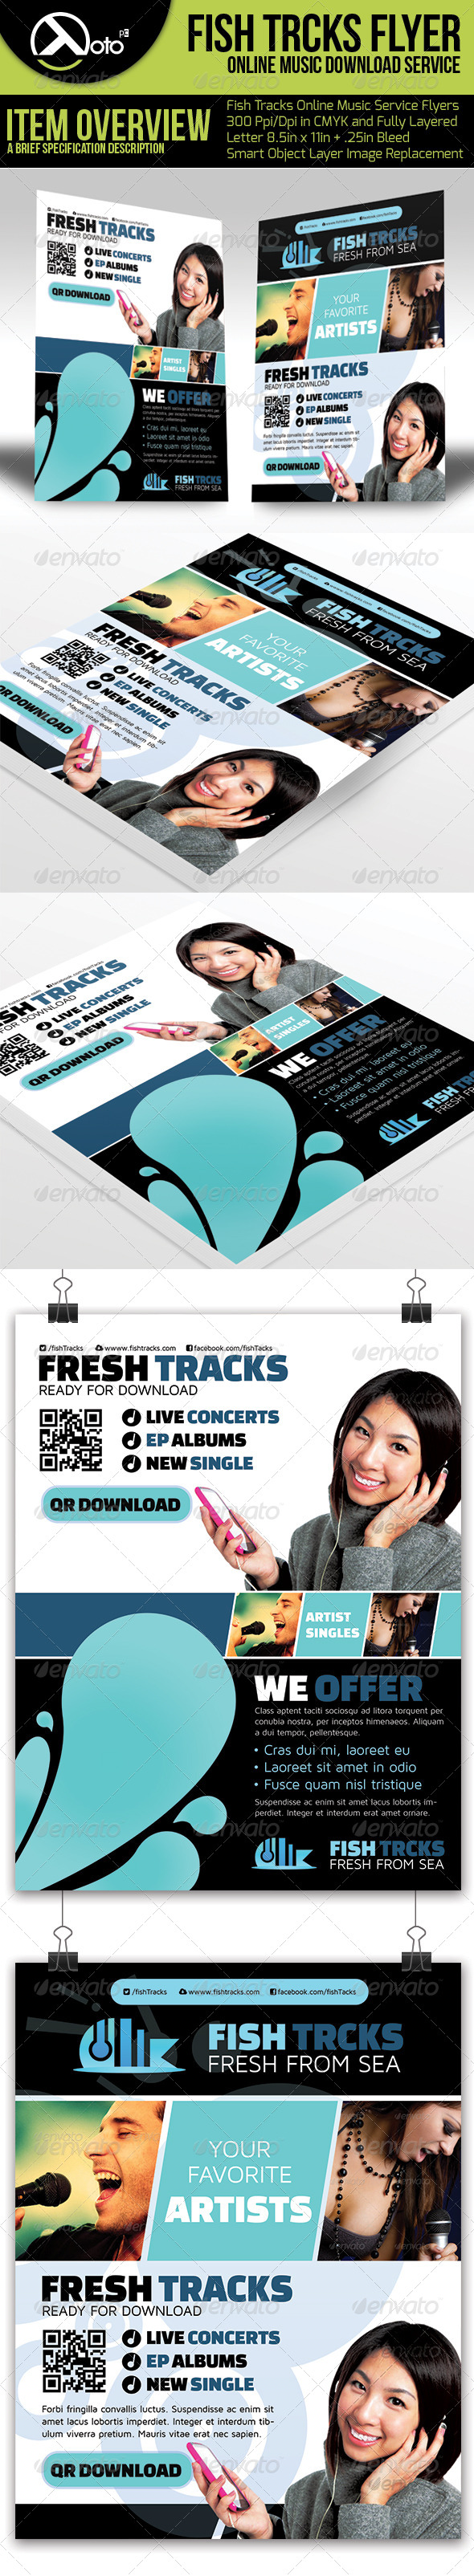 Fish Tracks Online Music Store Flyers - Commerce Flyers